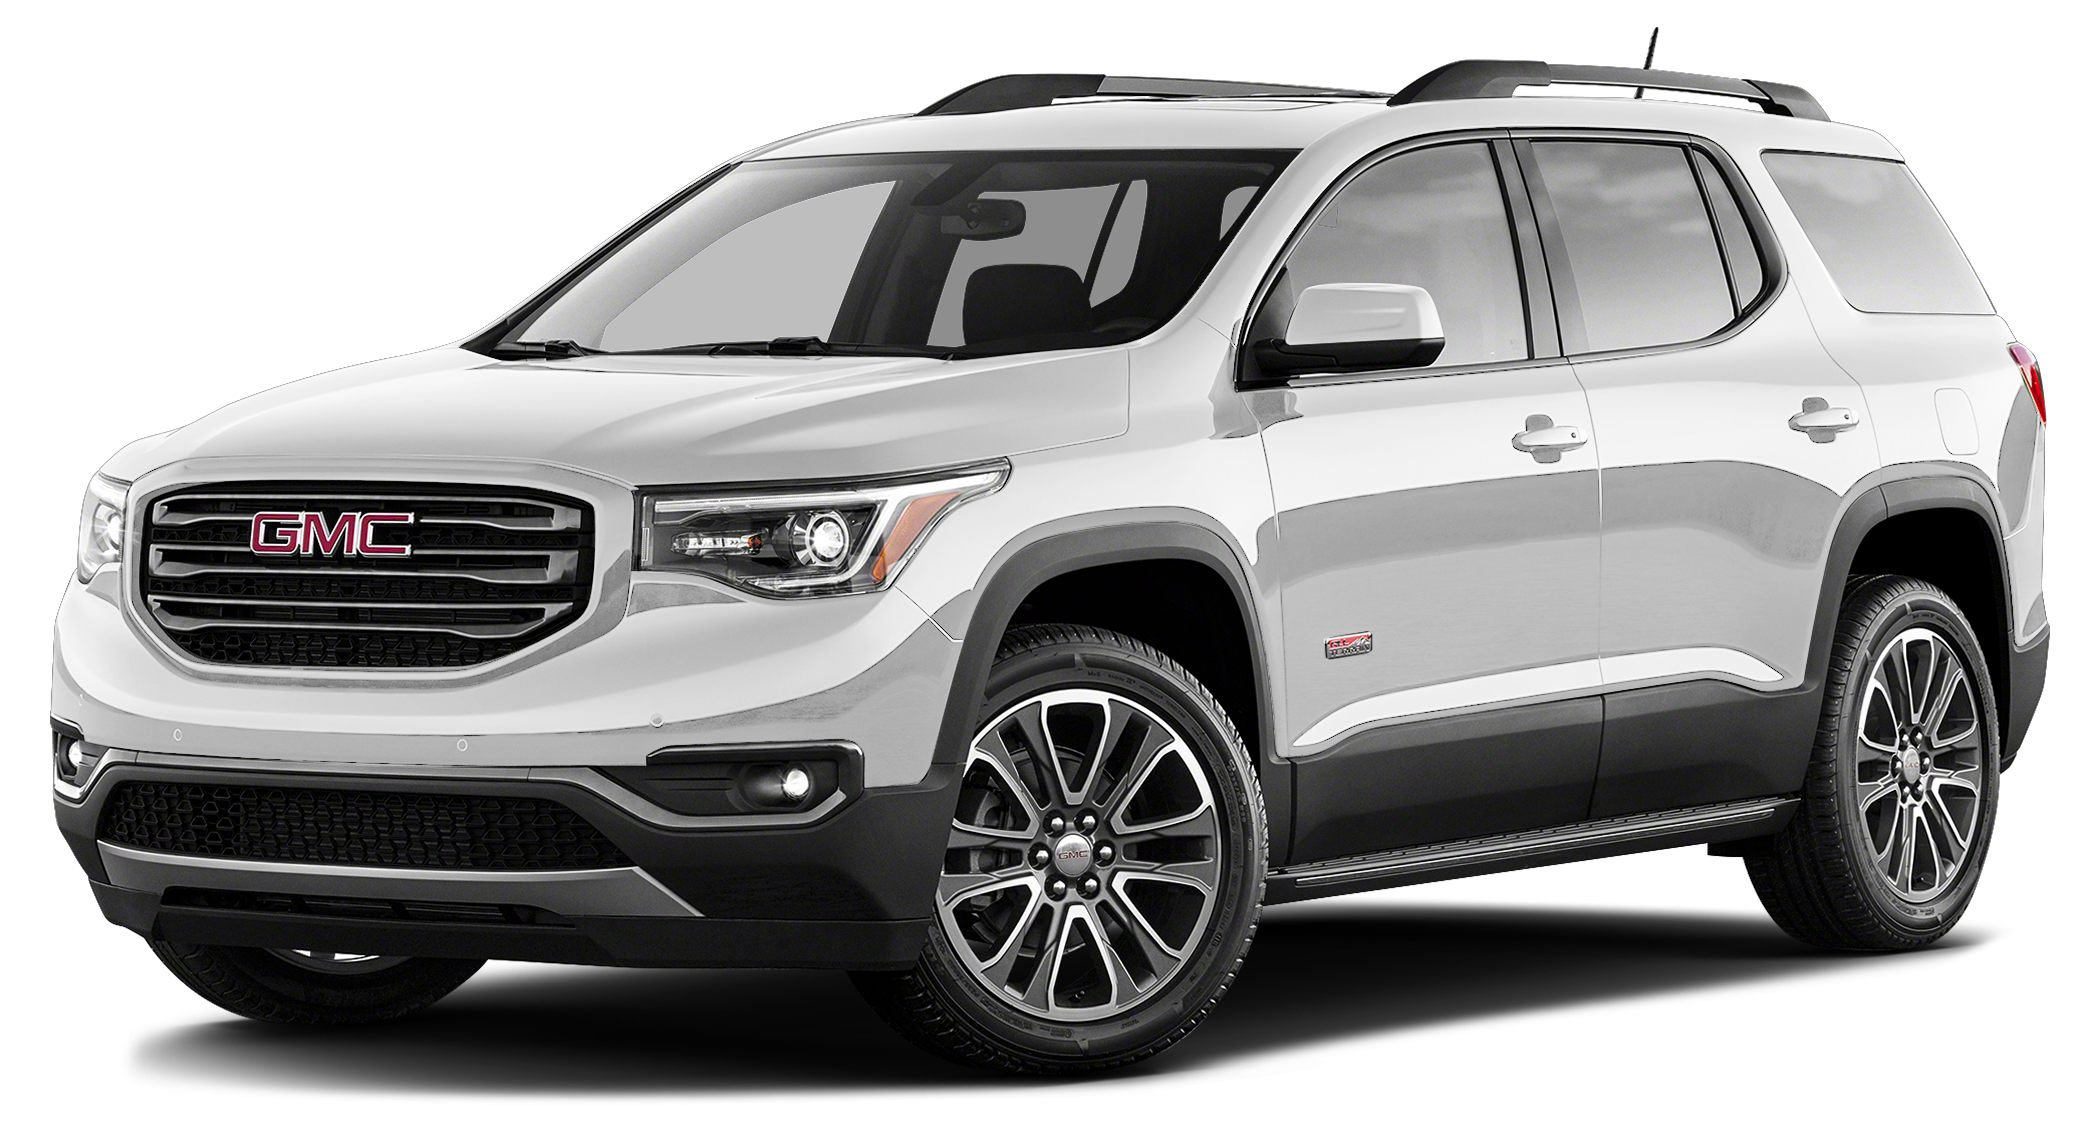 2017 GMC Acadia SLE-2 The all-new 2017 GMC Acadia mid-size SUV is designed to make a lasting impre